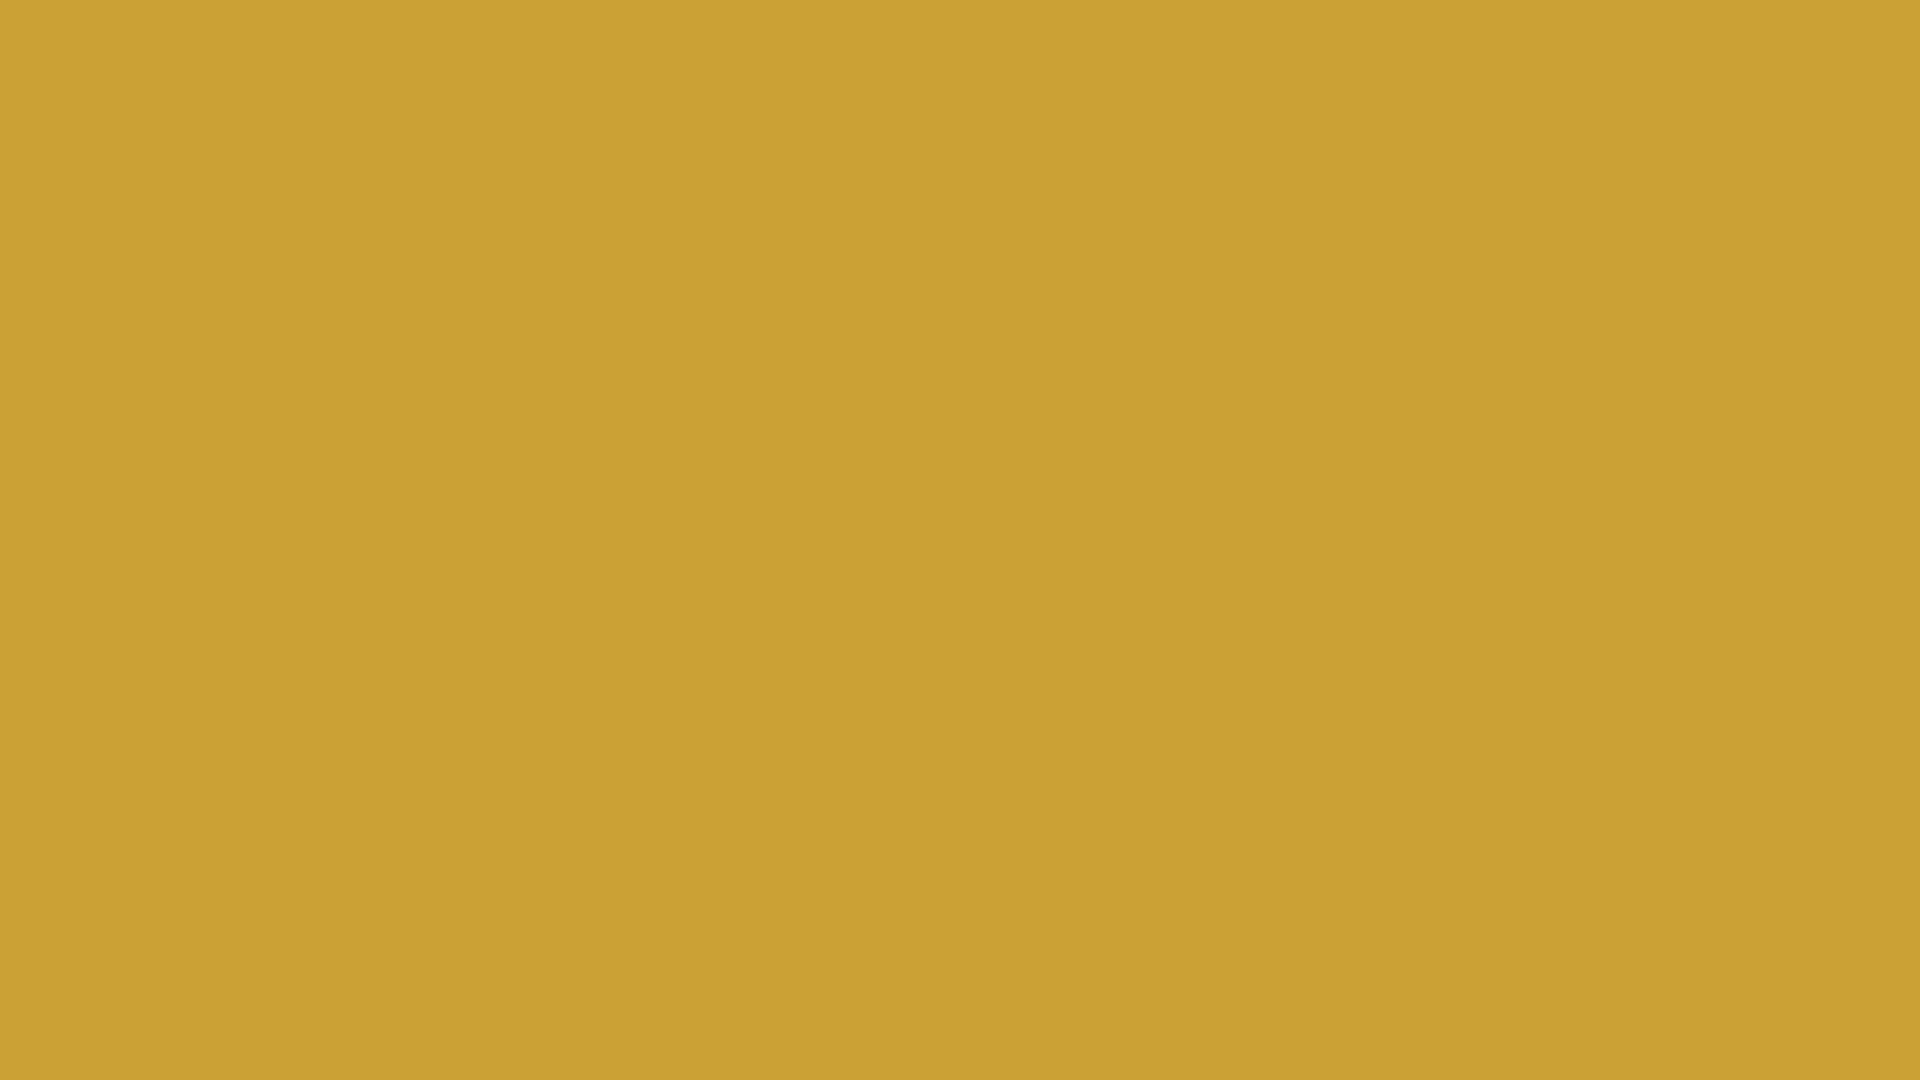 1920x1080 Satin Sheen Gold Solid Color Background